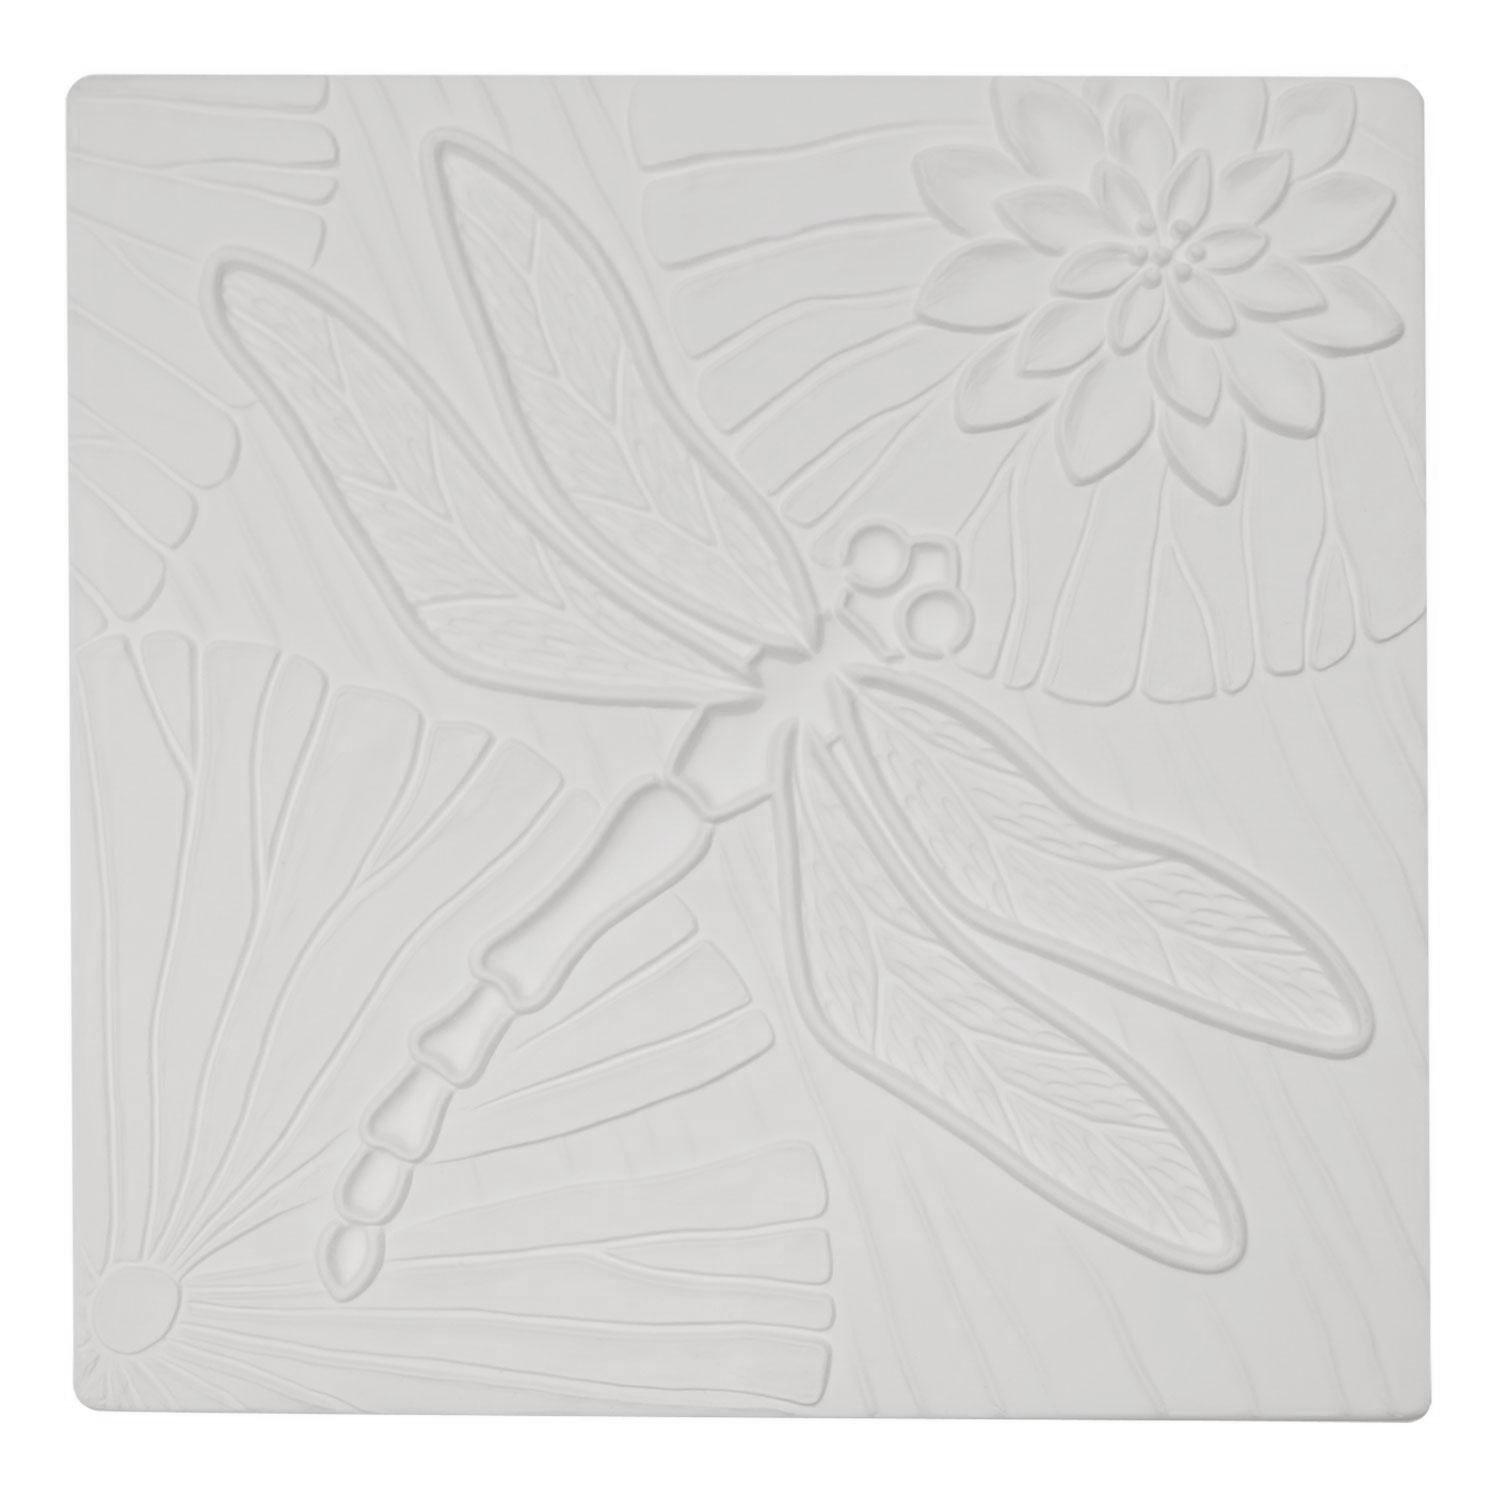 Dragonfly Picture Texture Mold